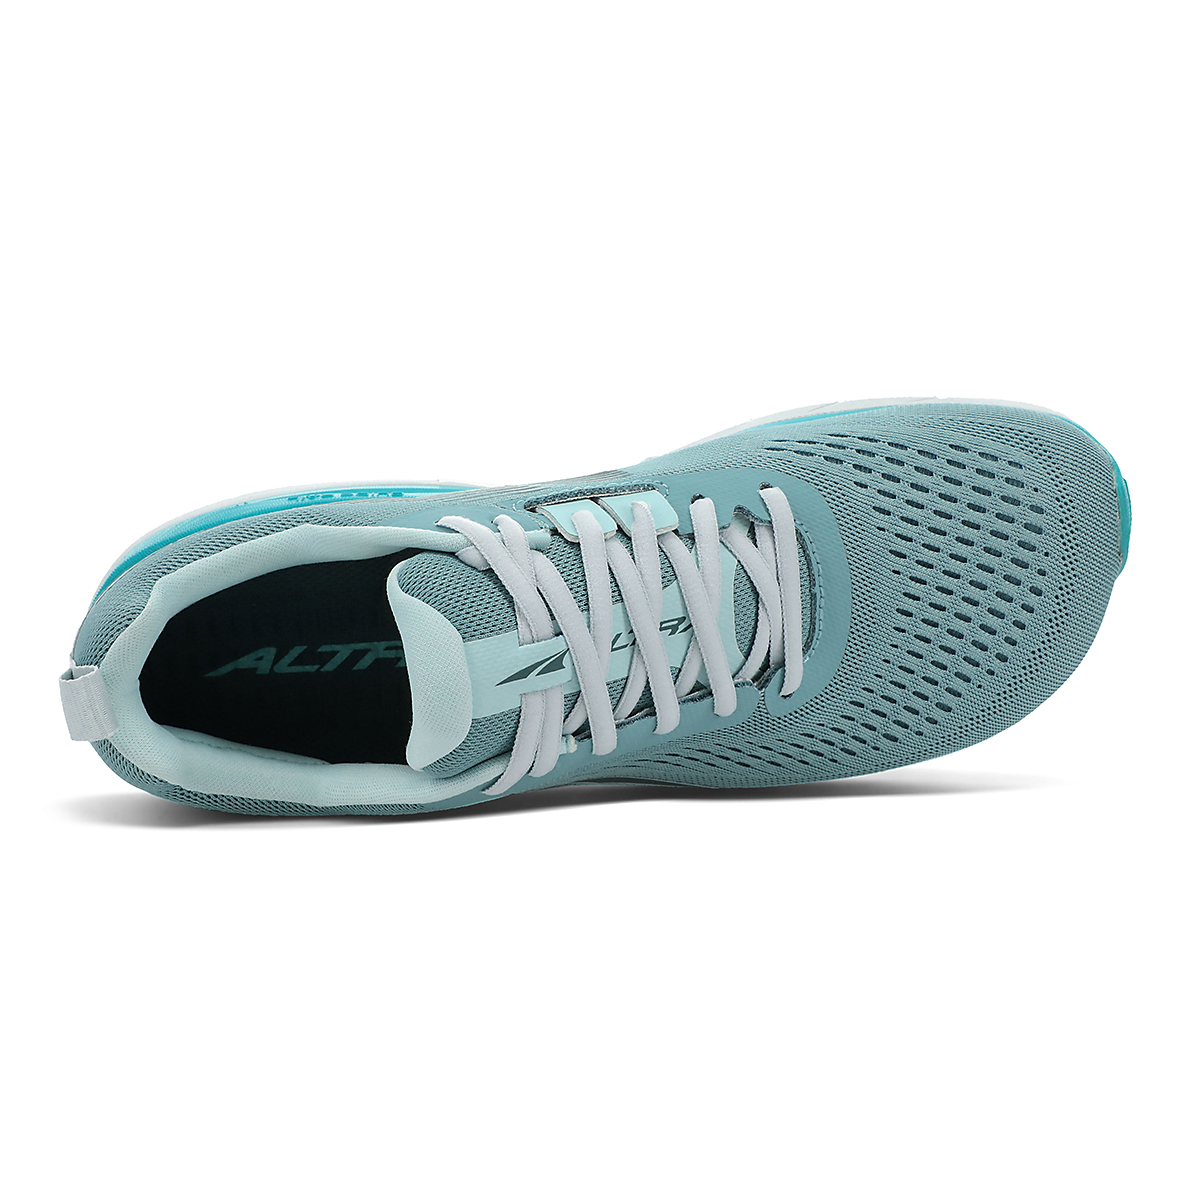 Women's Altra Provision 5 Running Shoe - Color: Teal/Green - Size: 5.5 - Width: Regular, Teal/Green, large, image 3